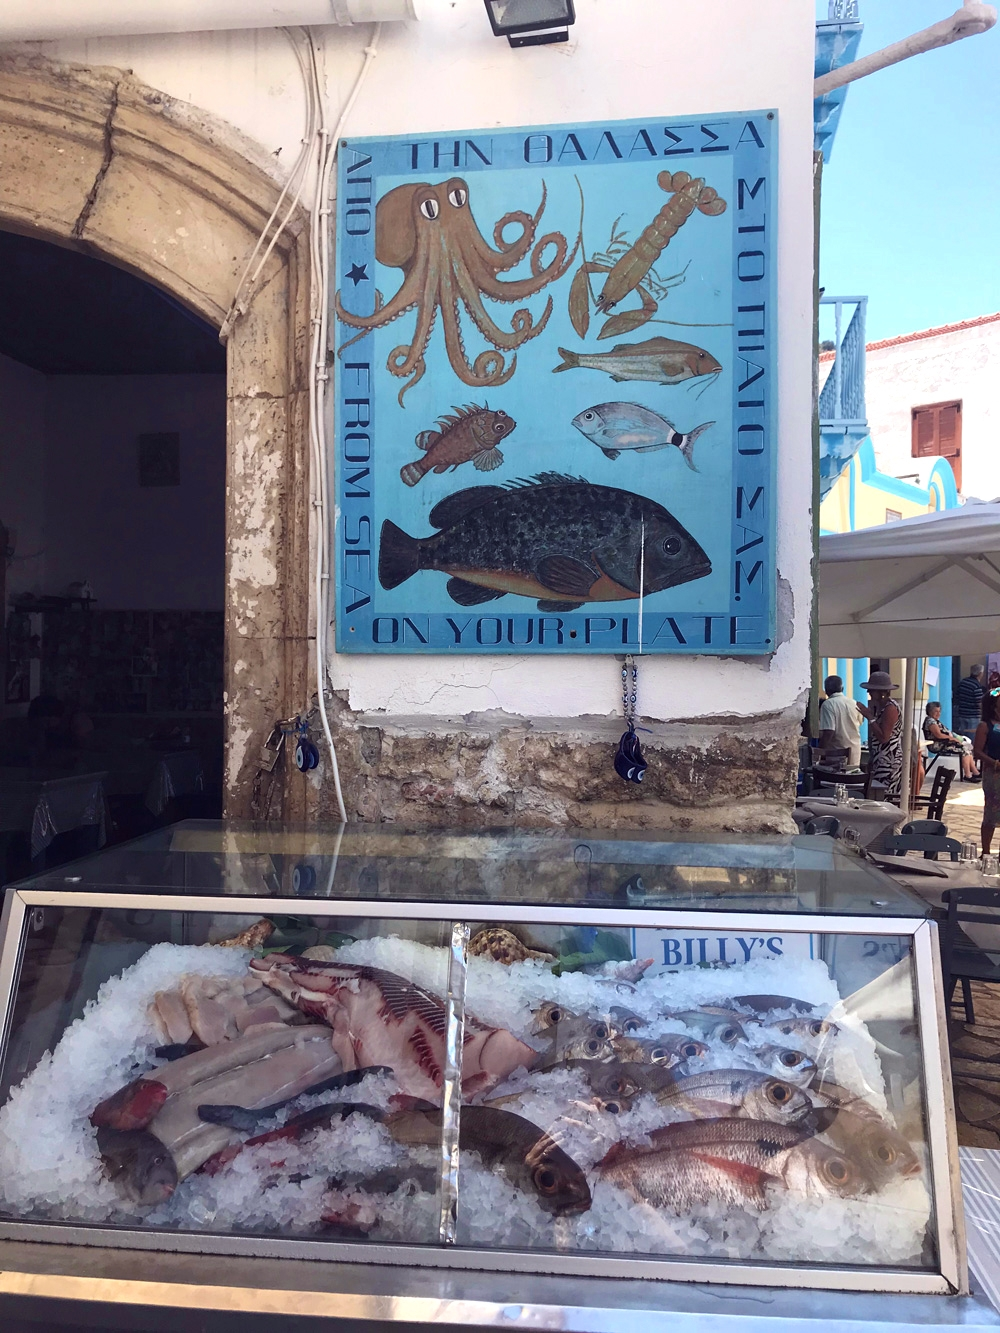 Freshly caught fish in an icebox below a poster advertising fresh octopus, fish and crustaceans on the streets of Kastellorizo